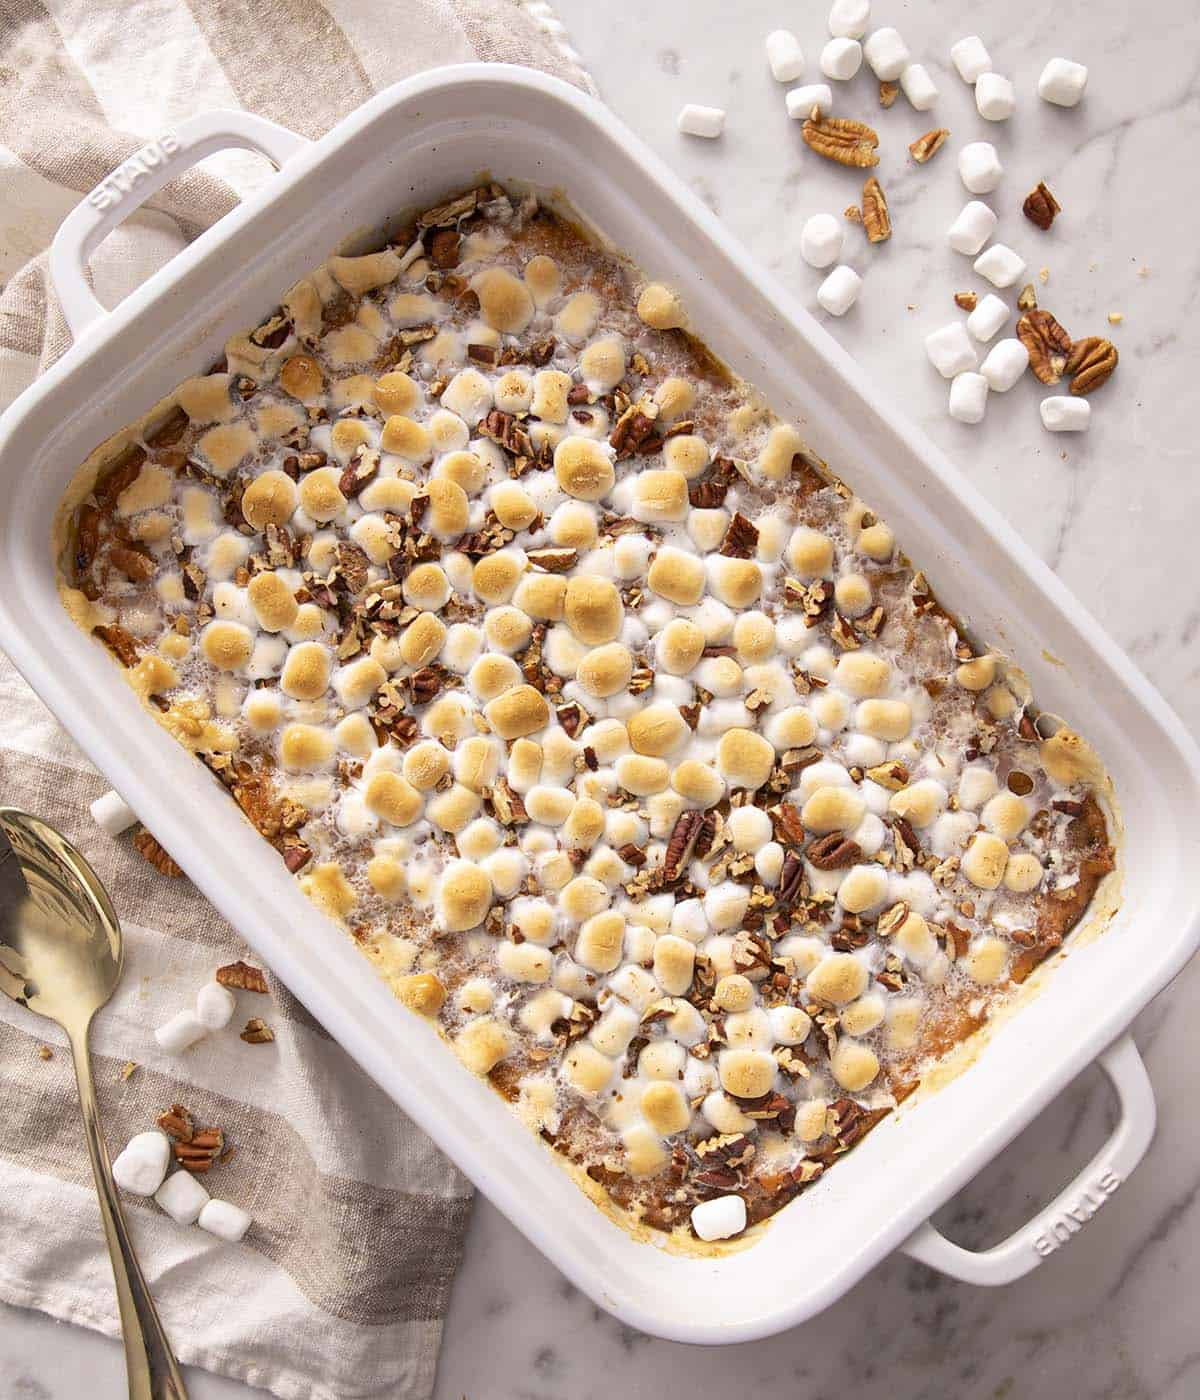 A sweet potato casserole topped with golden marshmallows.